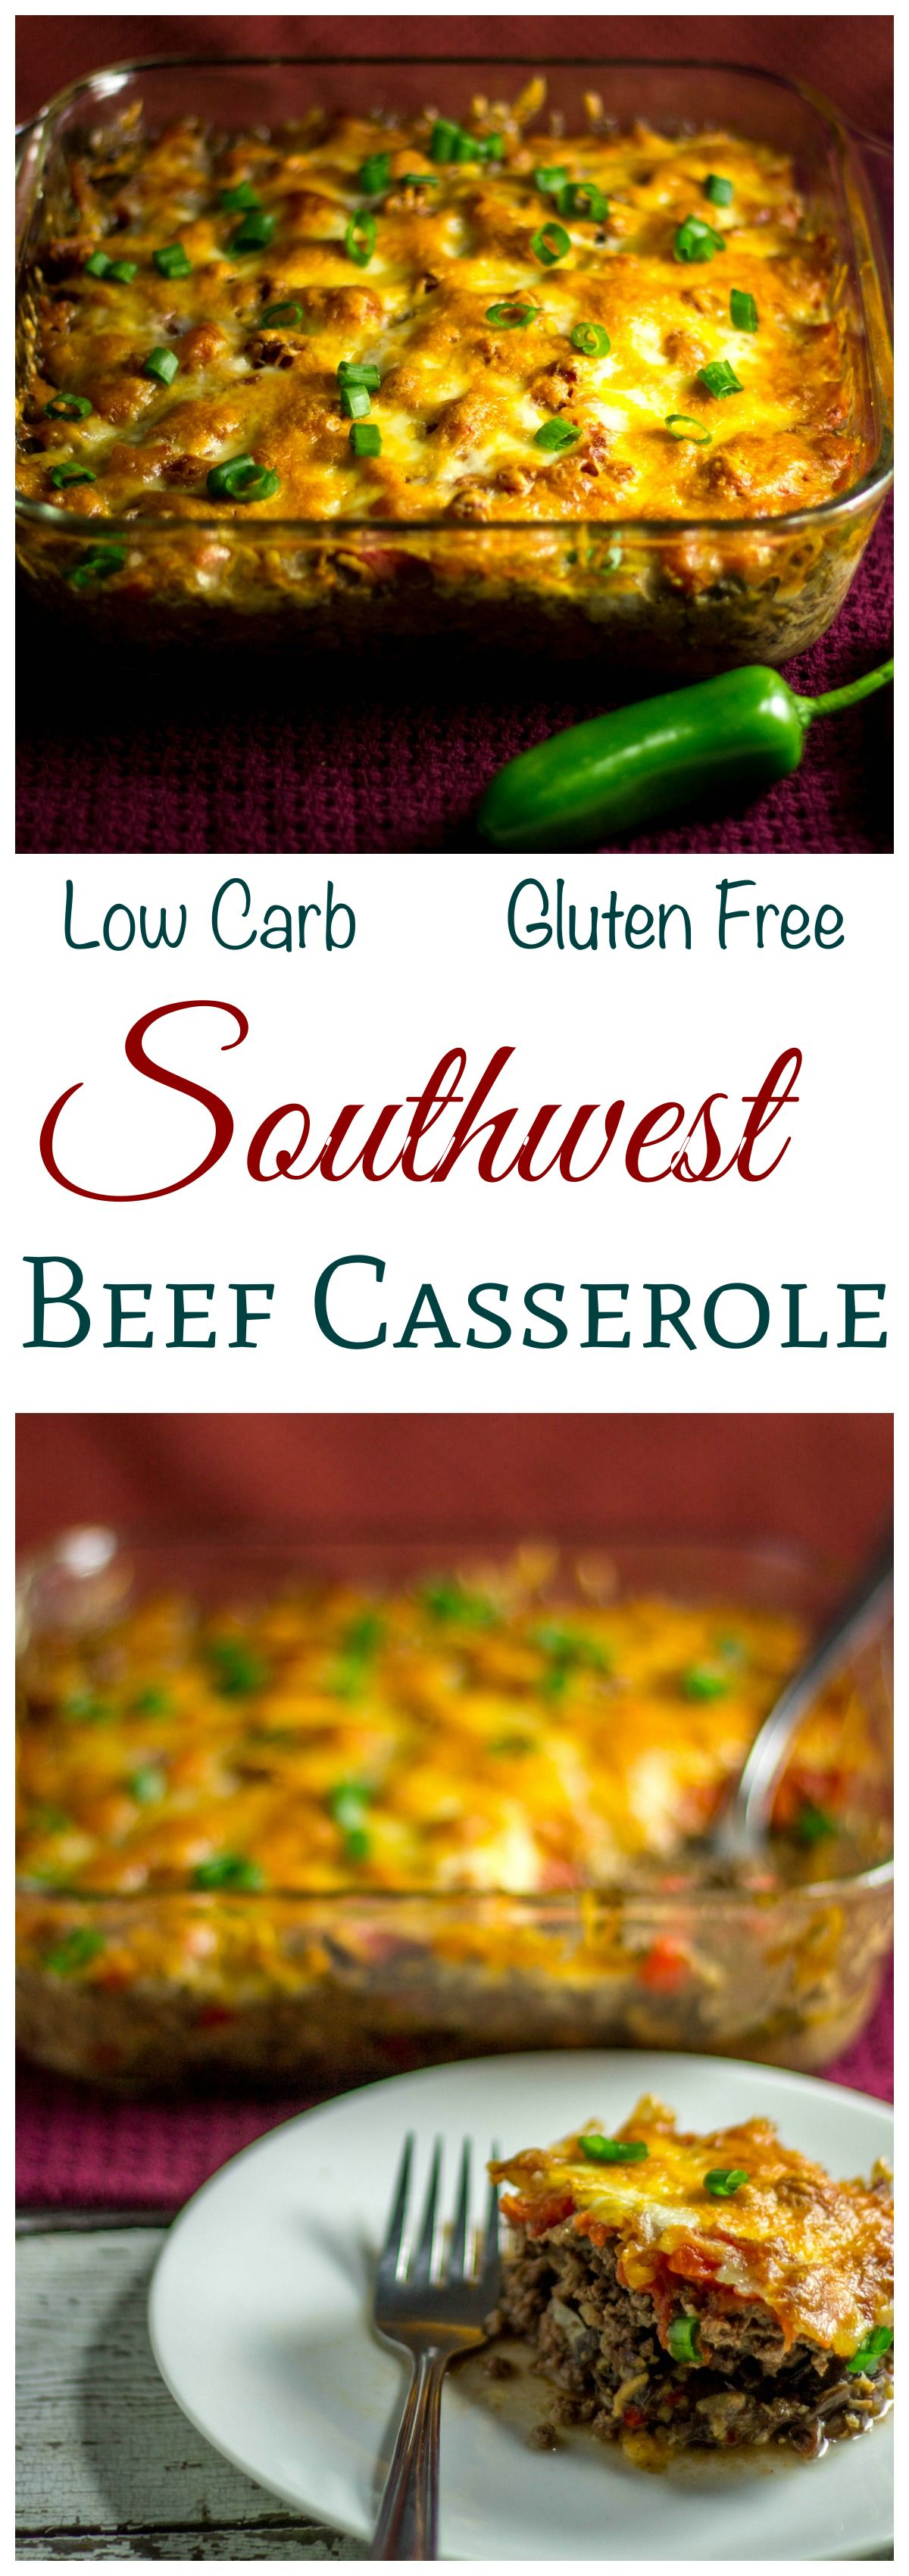 A low carb high fat Southwest Mexican style beef casserole that's loaded with flavor. Perfect for any LCHF Banting Keto diet. -   25 low carb beef recipes ideas